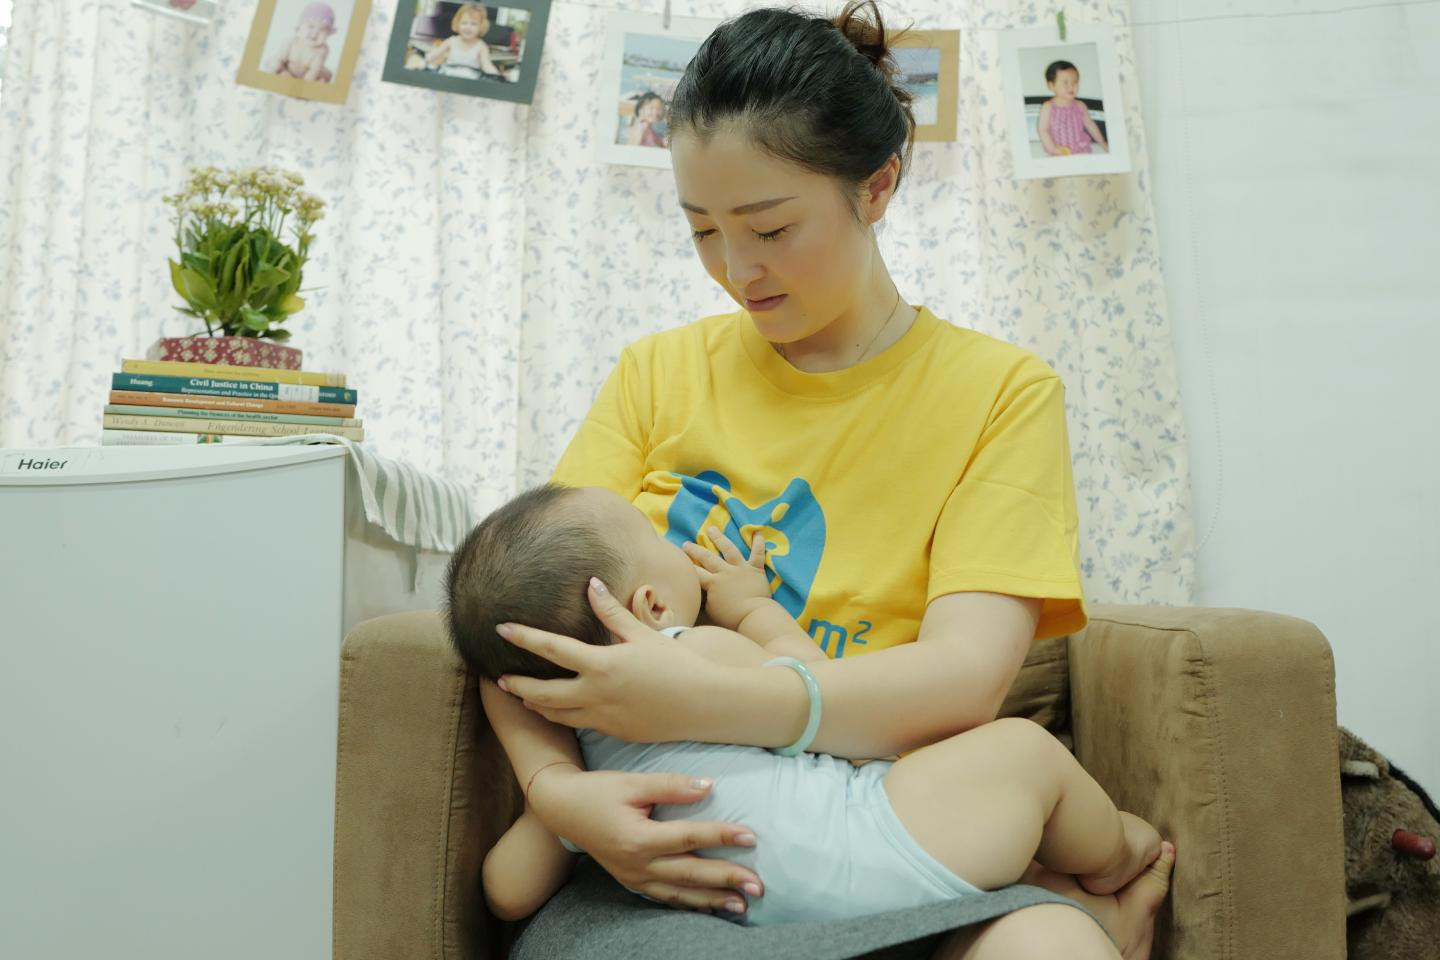 Expert advice from UNICEF about breastfeeding babies for mothers.